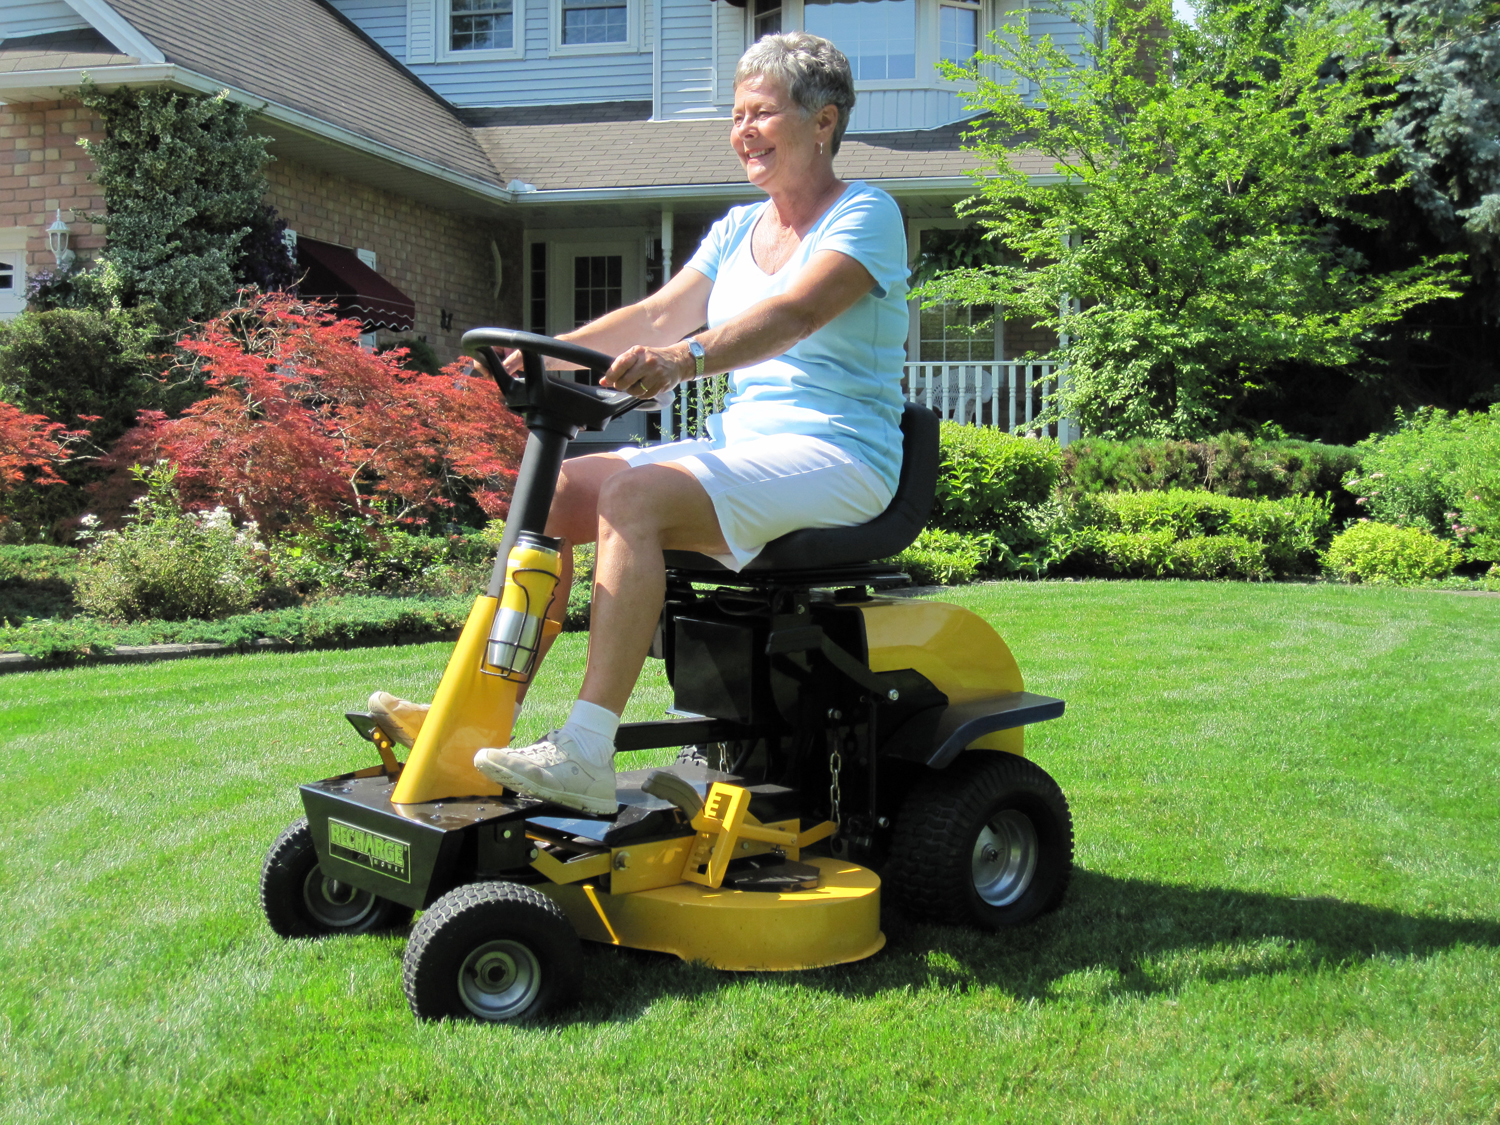 The New Recharge Mower G2 Riding Mower Is Cordless